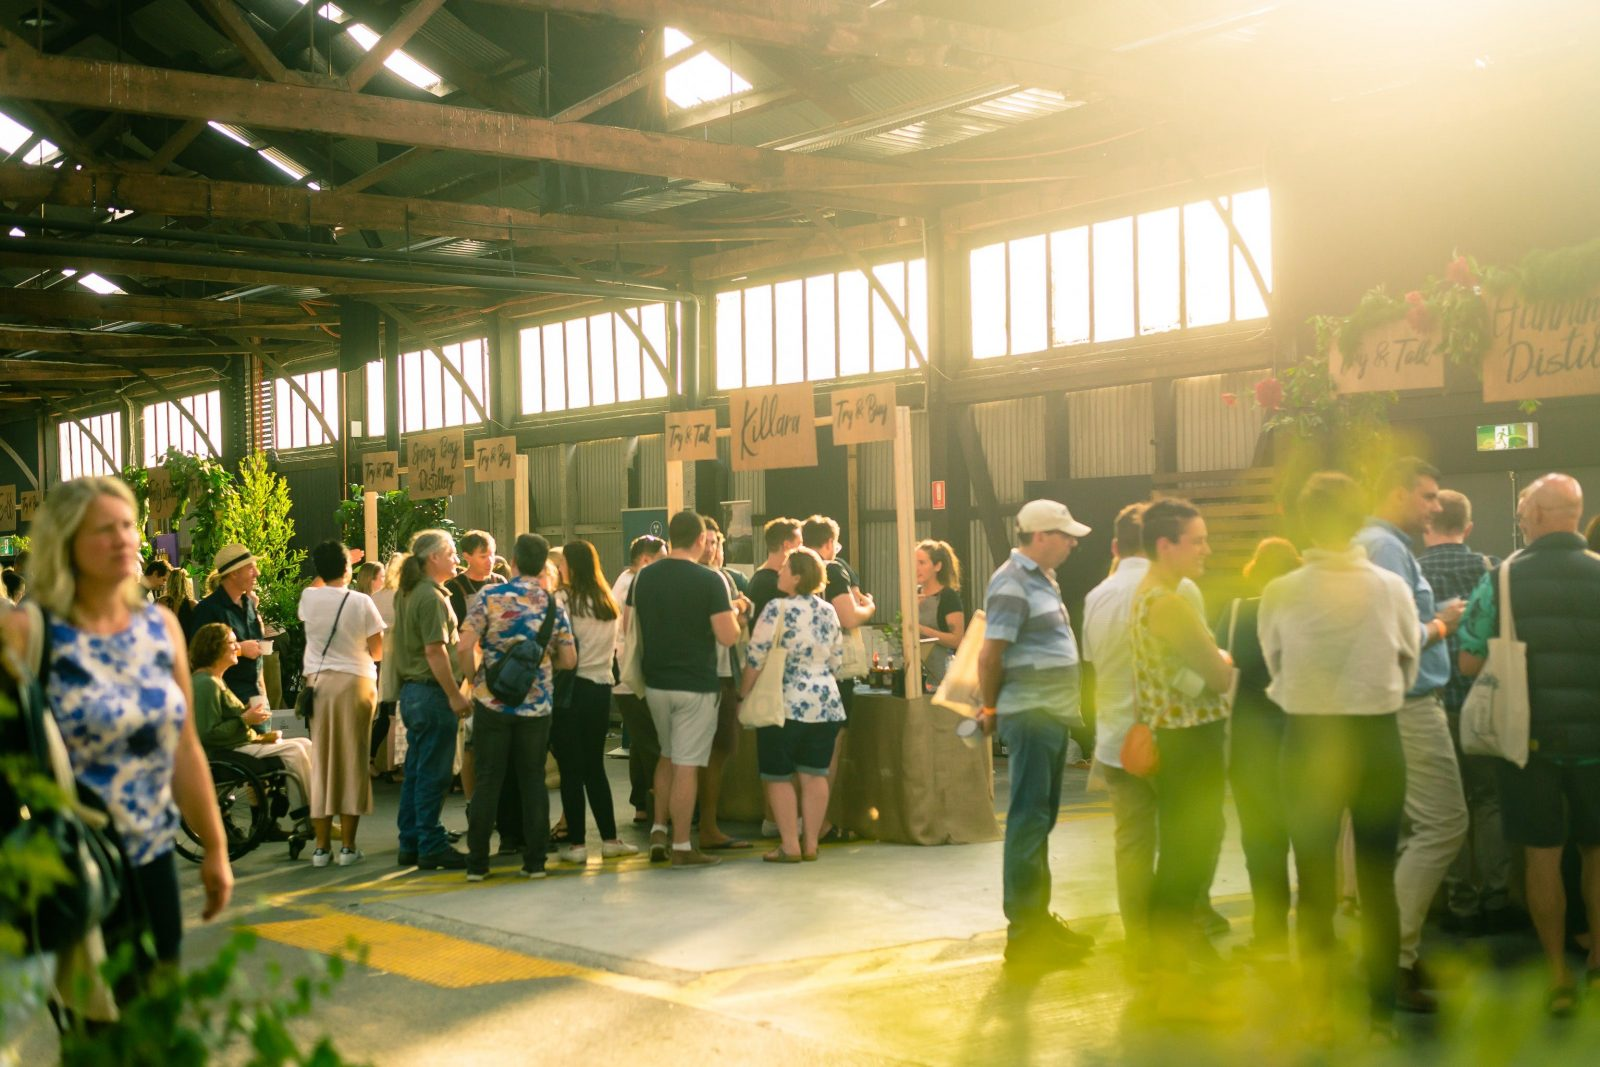 Sample a variety of gins from over 27 Tasmanian gin distilleries